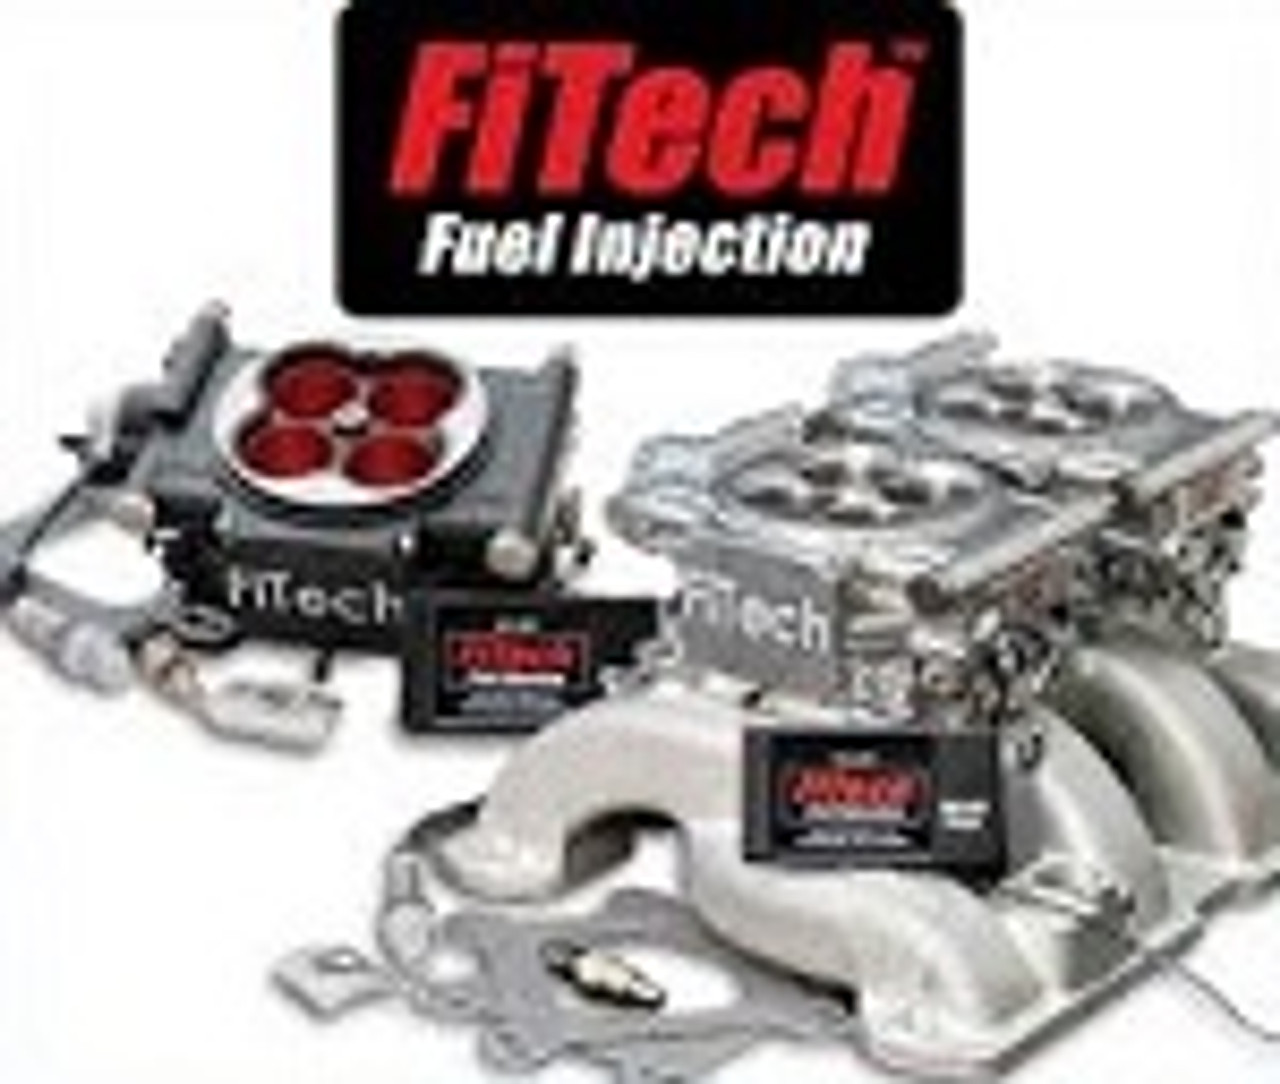 FiTech Easy Street 600 HP Self-Tuning Fuel Injection System 30005 with FREE SHIPPING